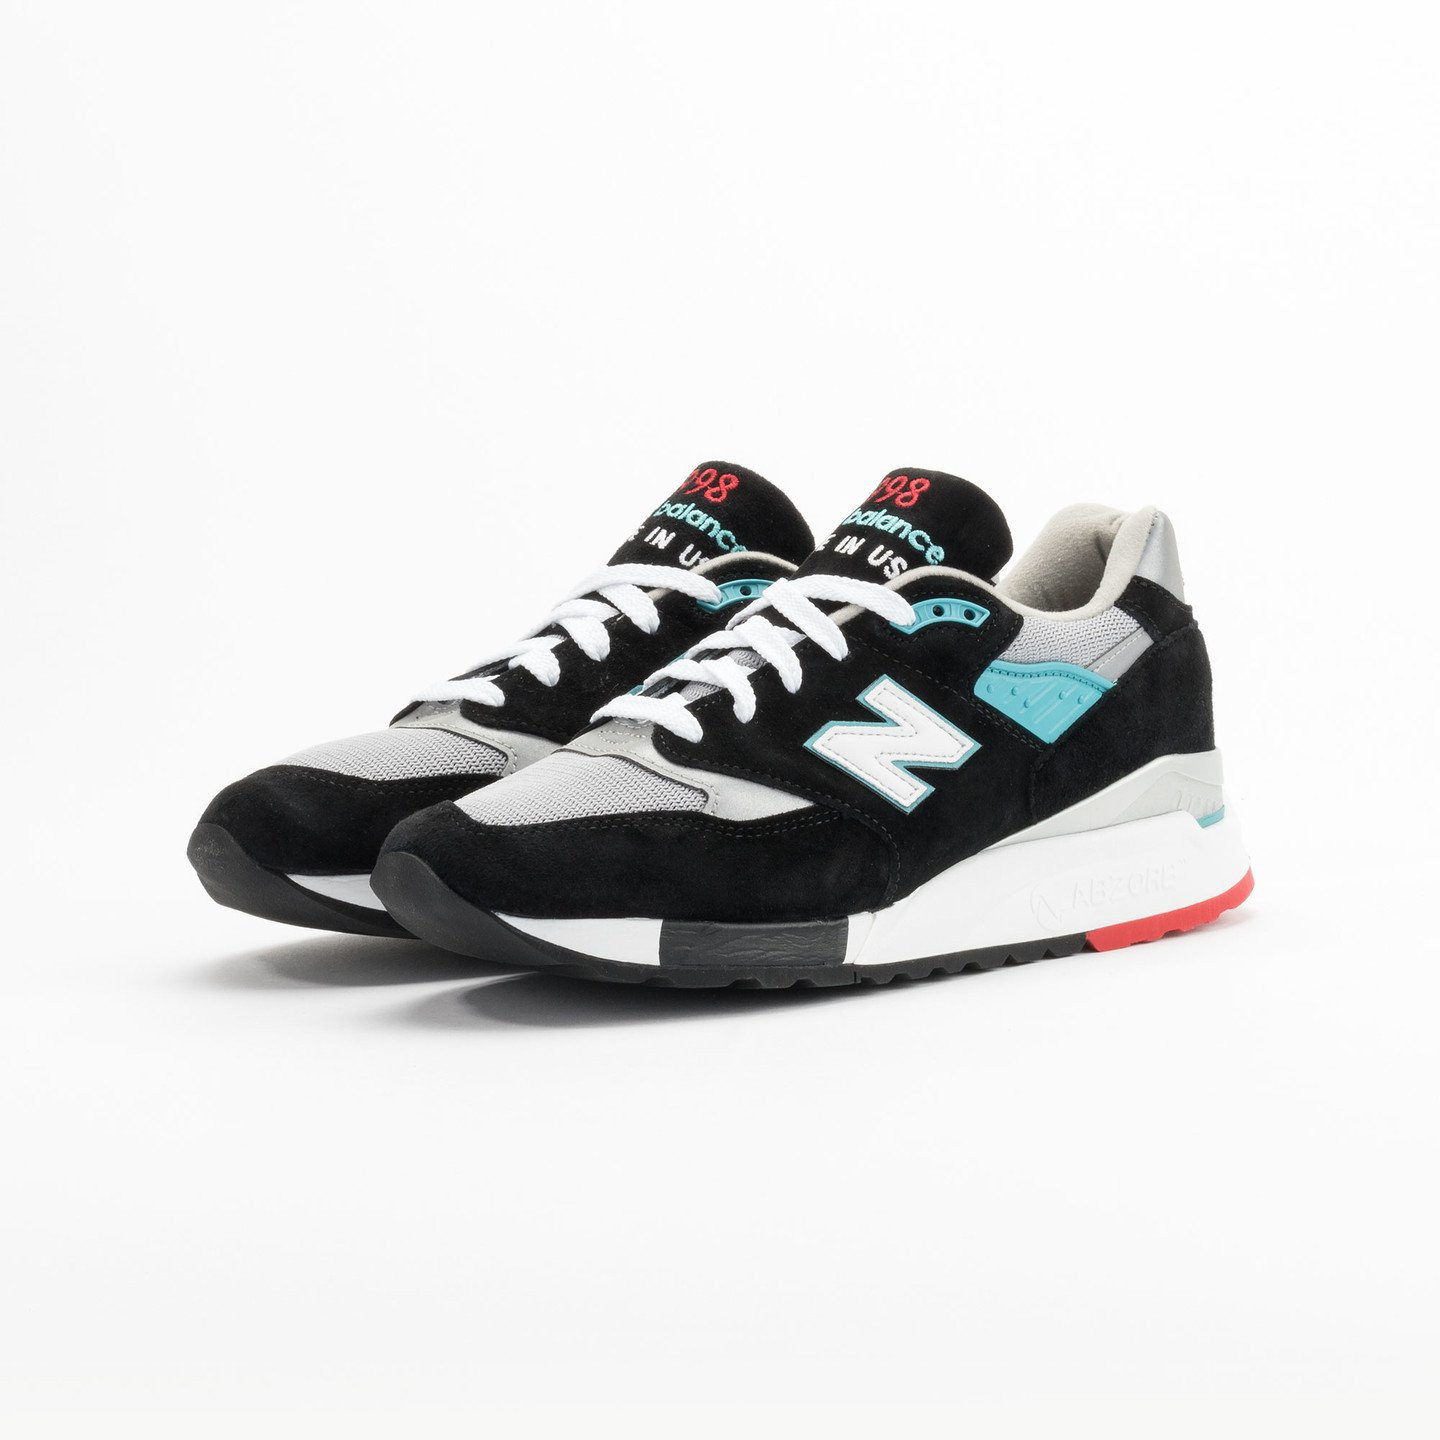 New Balance M998 CBB - Made in USA Black / Grey / Turquoise M998CBB-45.5